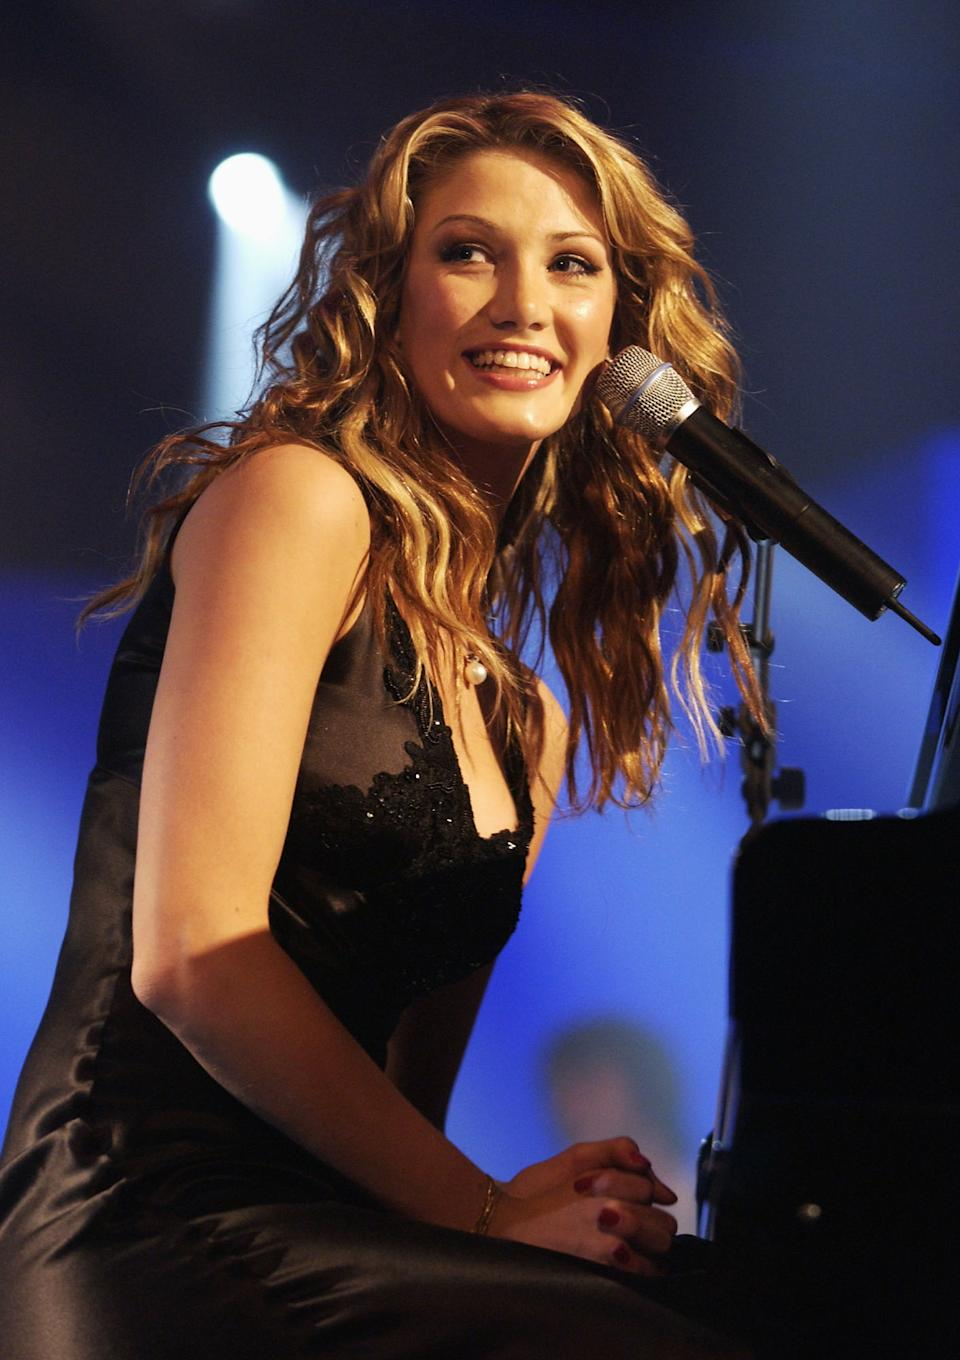 MELBOURNE - JANUARY 28:  Delta Goodrem performs during the presentation of the Allan Border Medal at the Crown Palladium Ballroom in Melbourne, Australia on January 28, 2003. The Allan Border Medal is awarded to Australia's best cricketer over the last 12 months in Tests and One-Day Internationals. (Photo by Robert Cianflone/Getty Images)